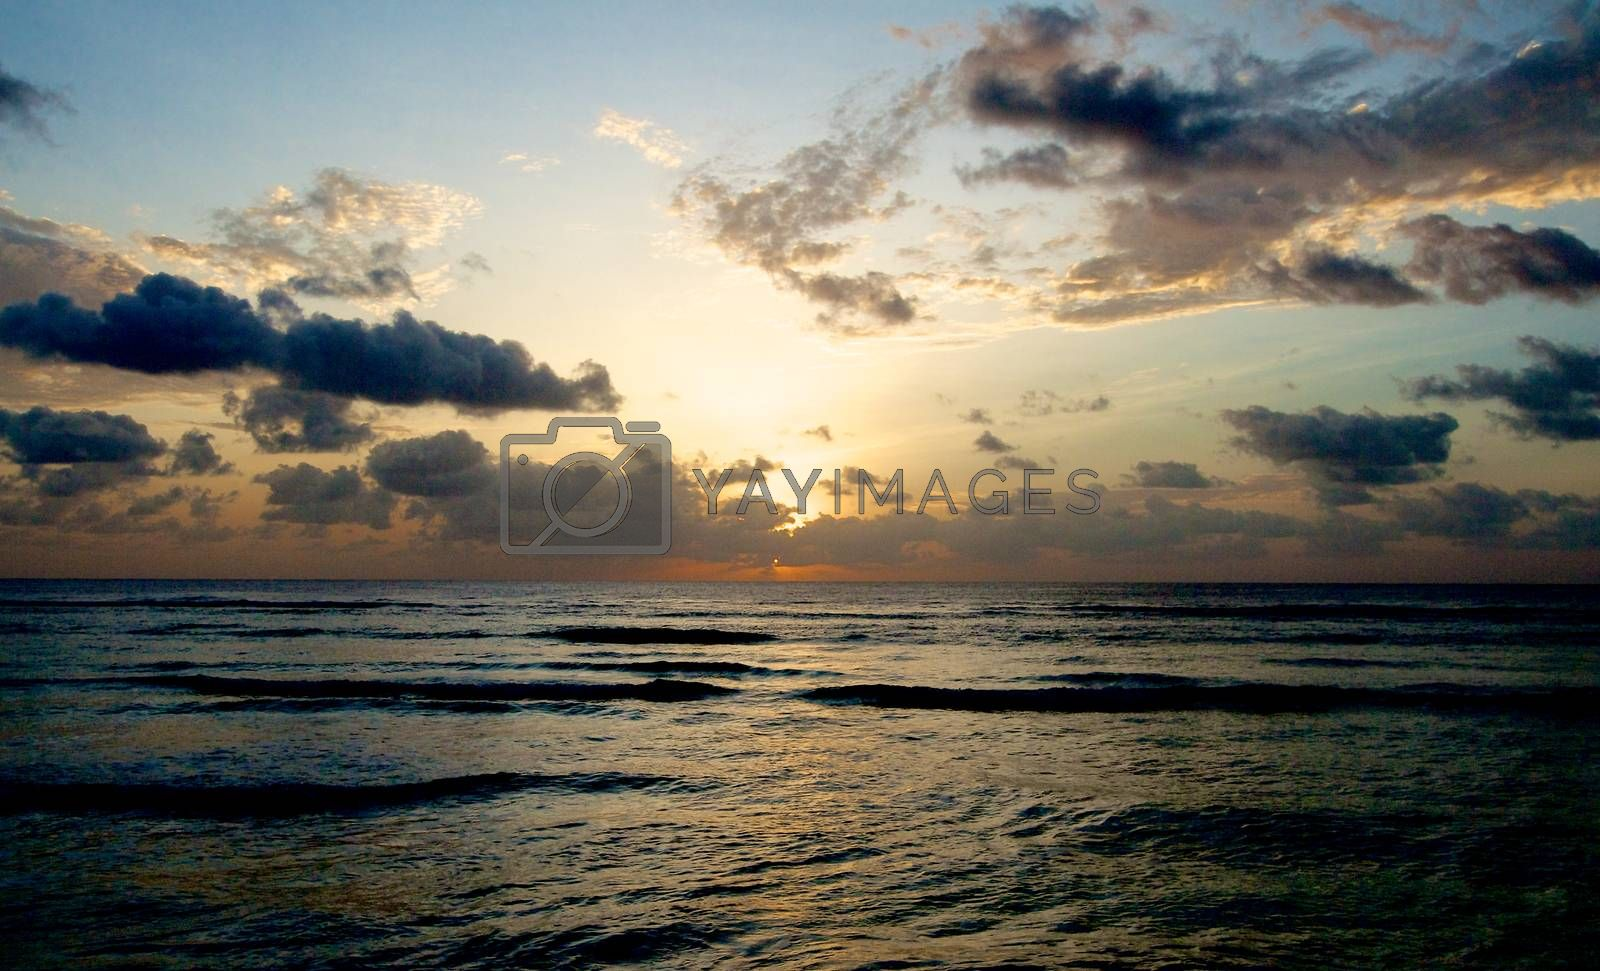 Beautiful Sunrise with Dramatic Clouds over Waves Horizon Outdoors. Indian Ocean, Maldives